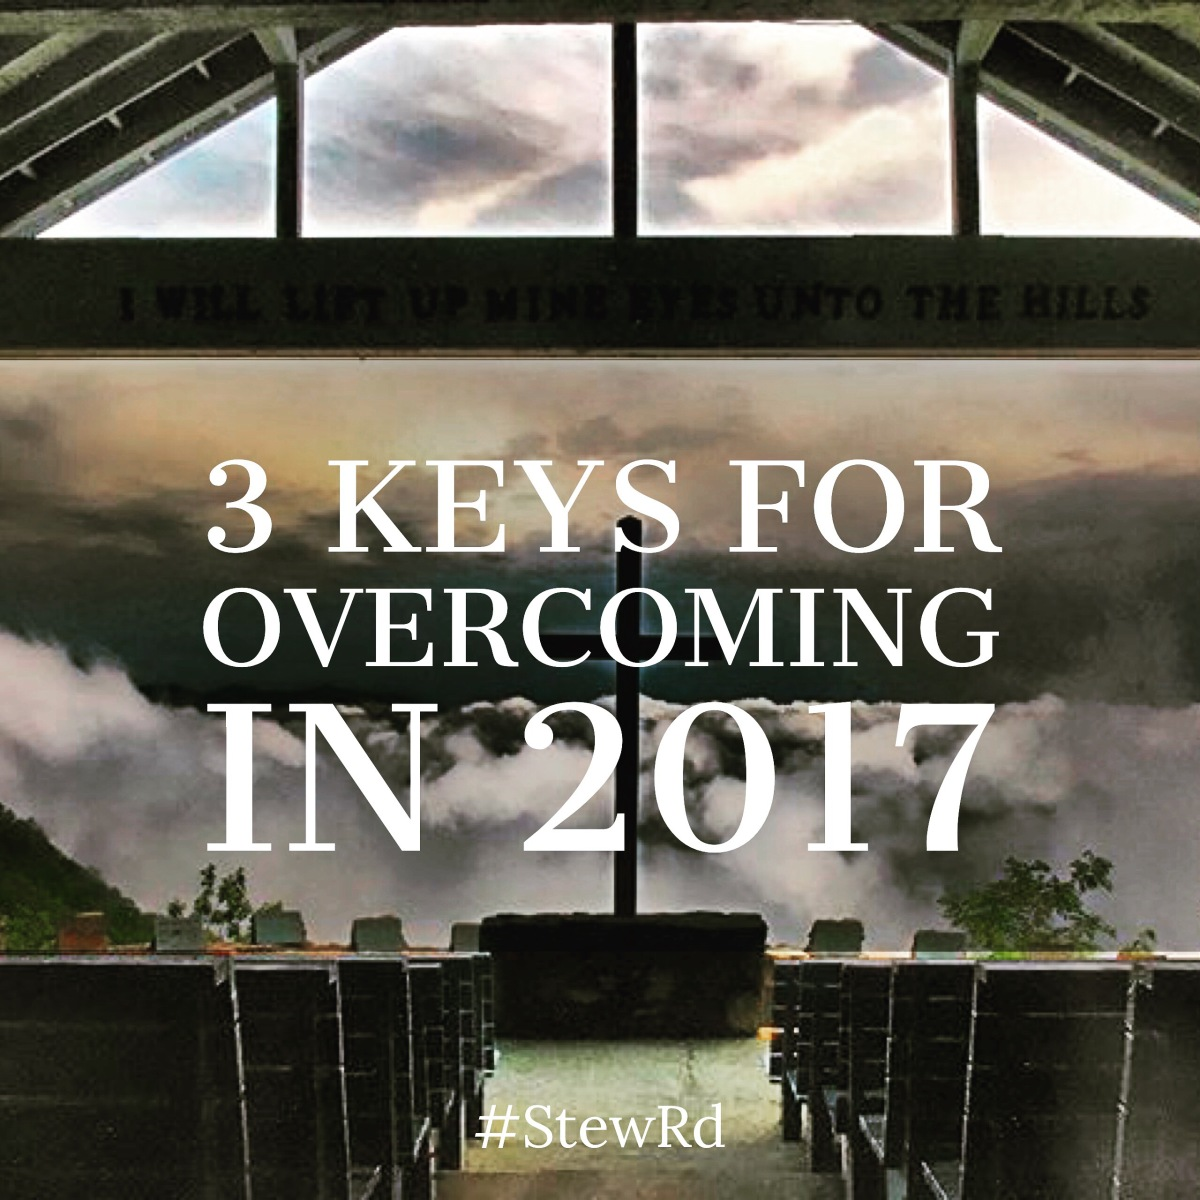 3 Keys To Overcoming in 2017